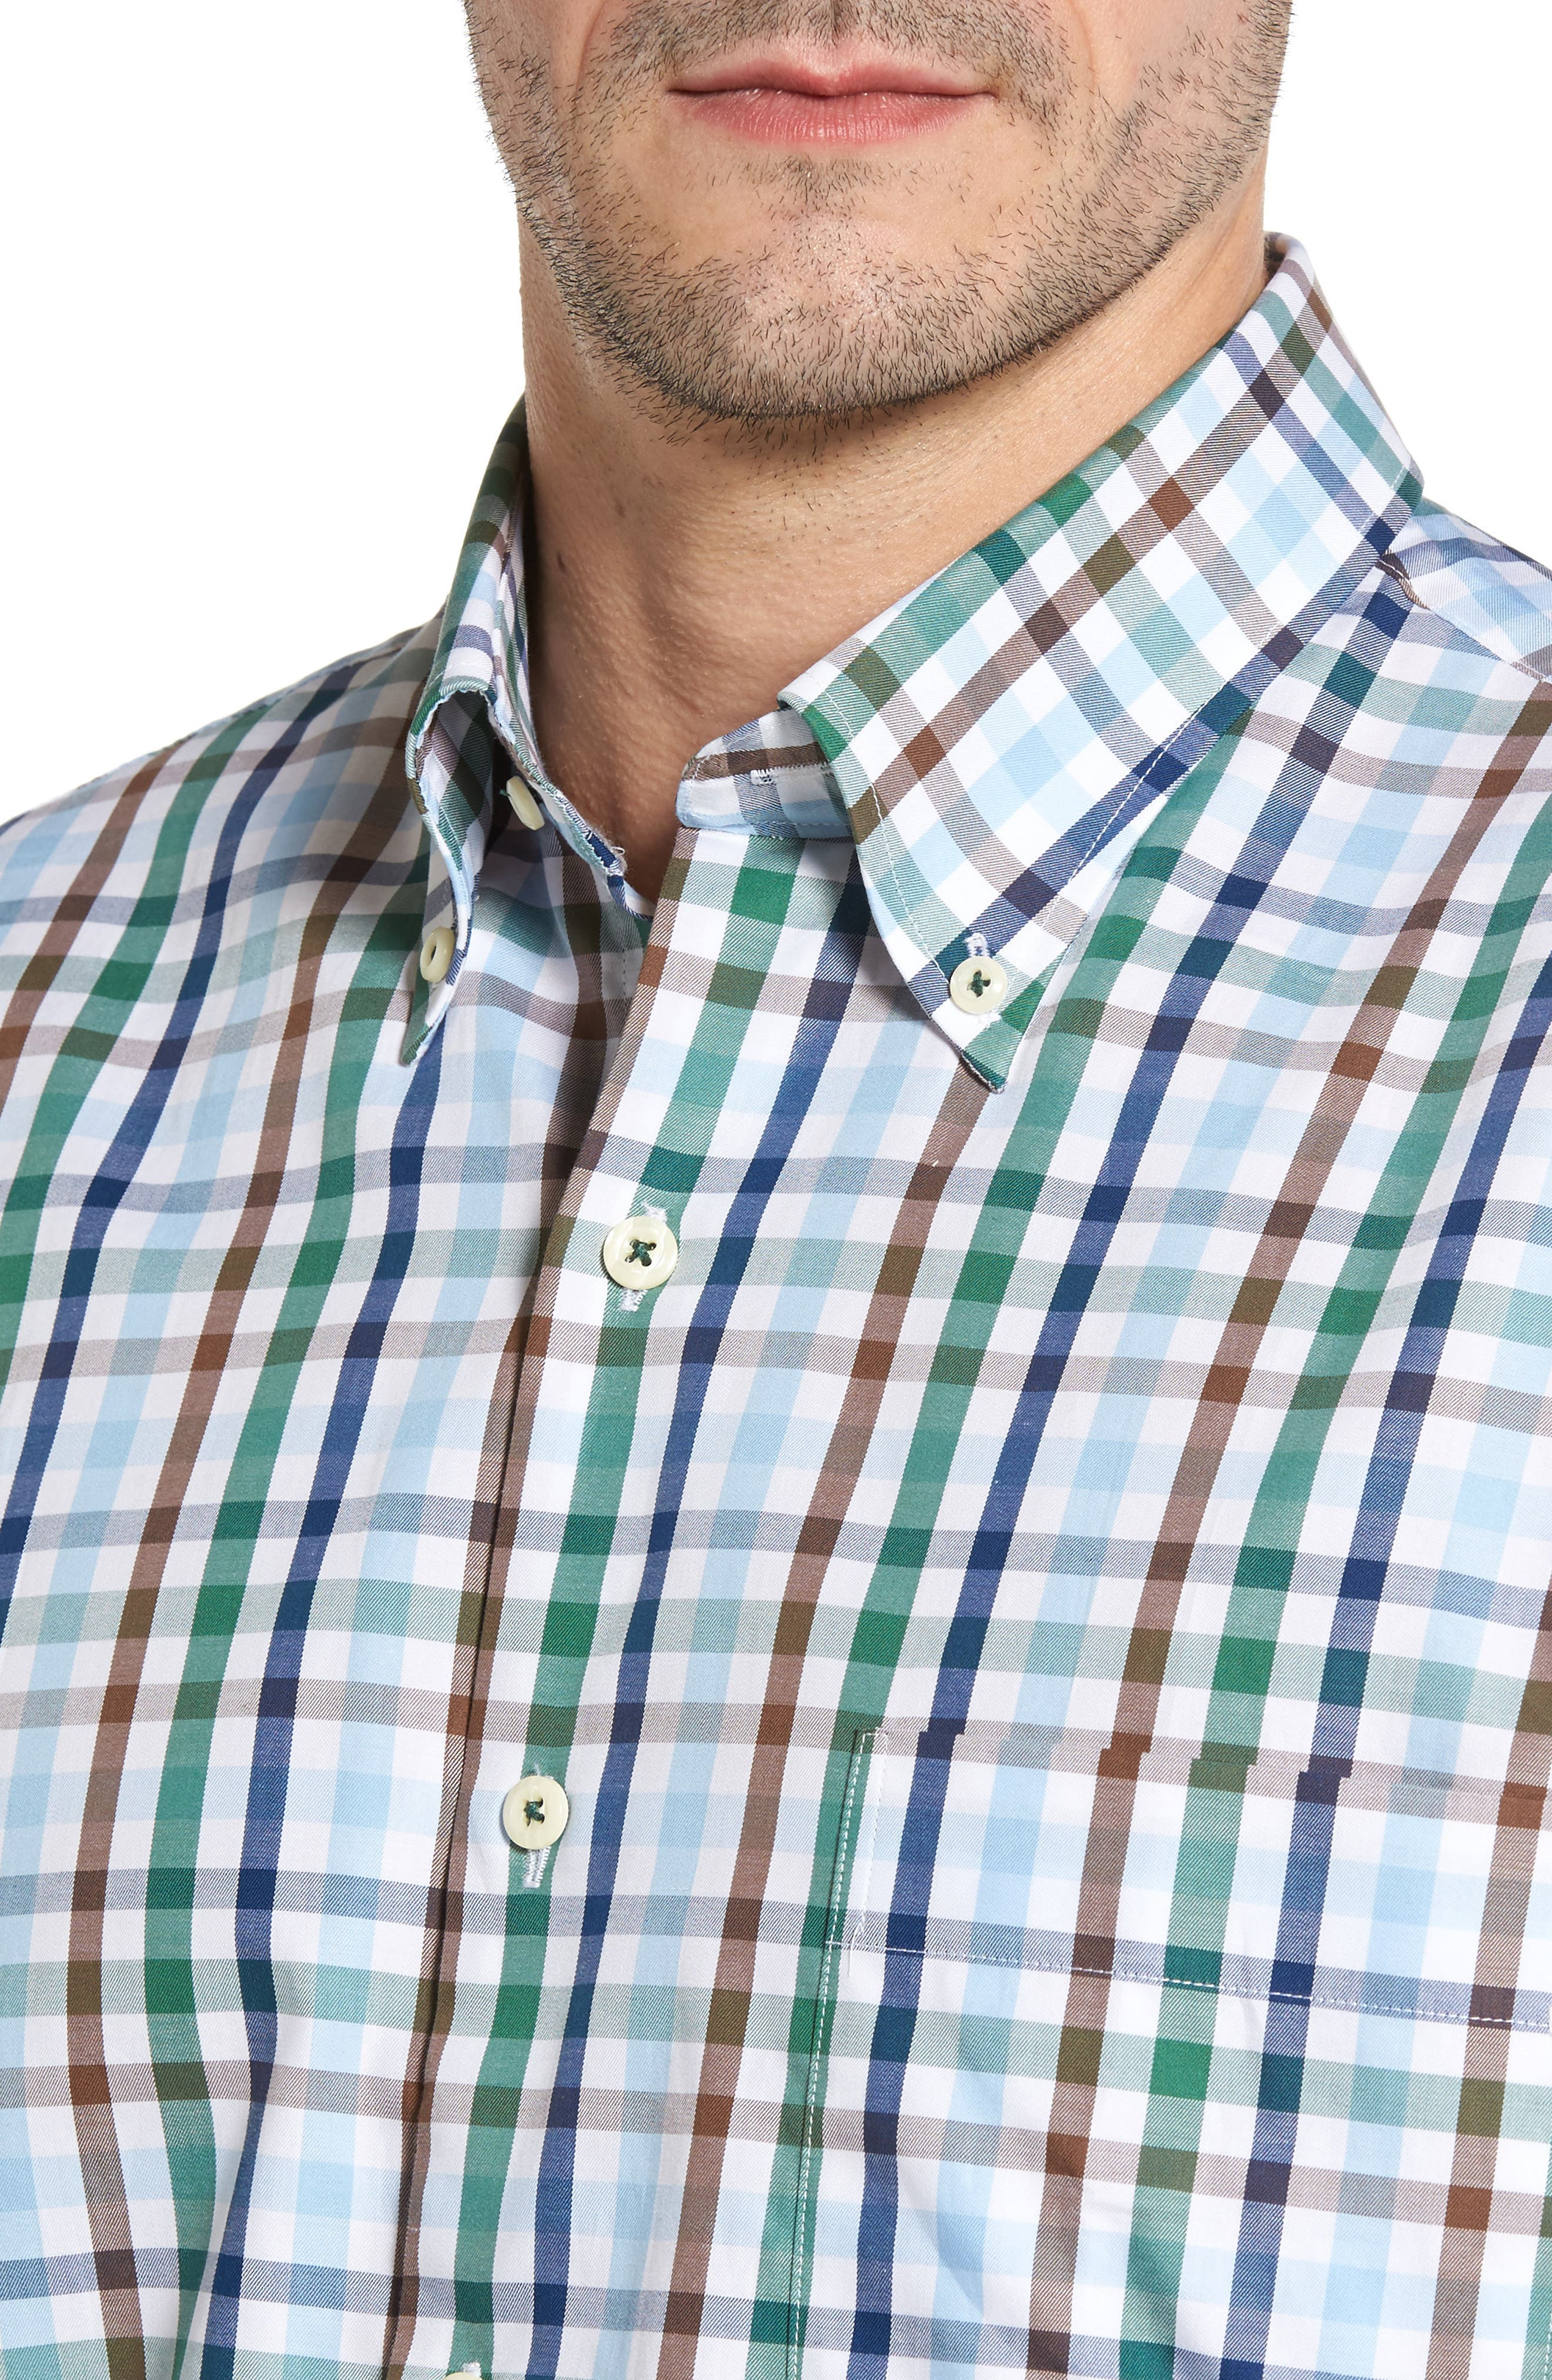 Trail Check Sport Shirt,                             Alternate thumbnail 4, color,                             314